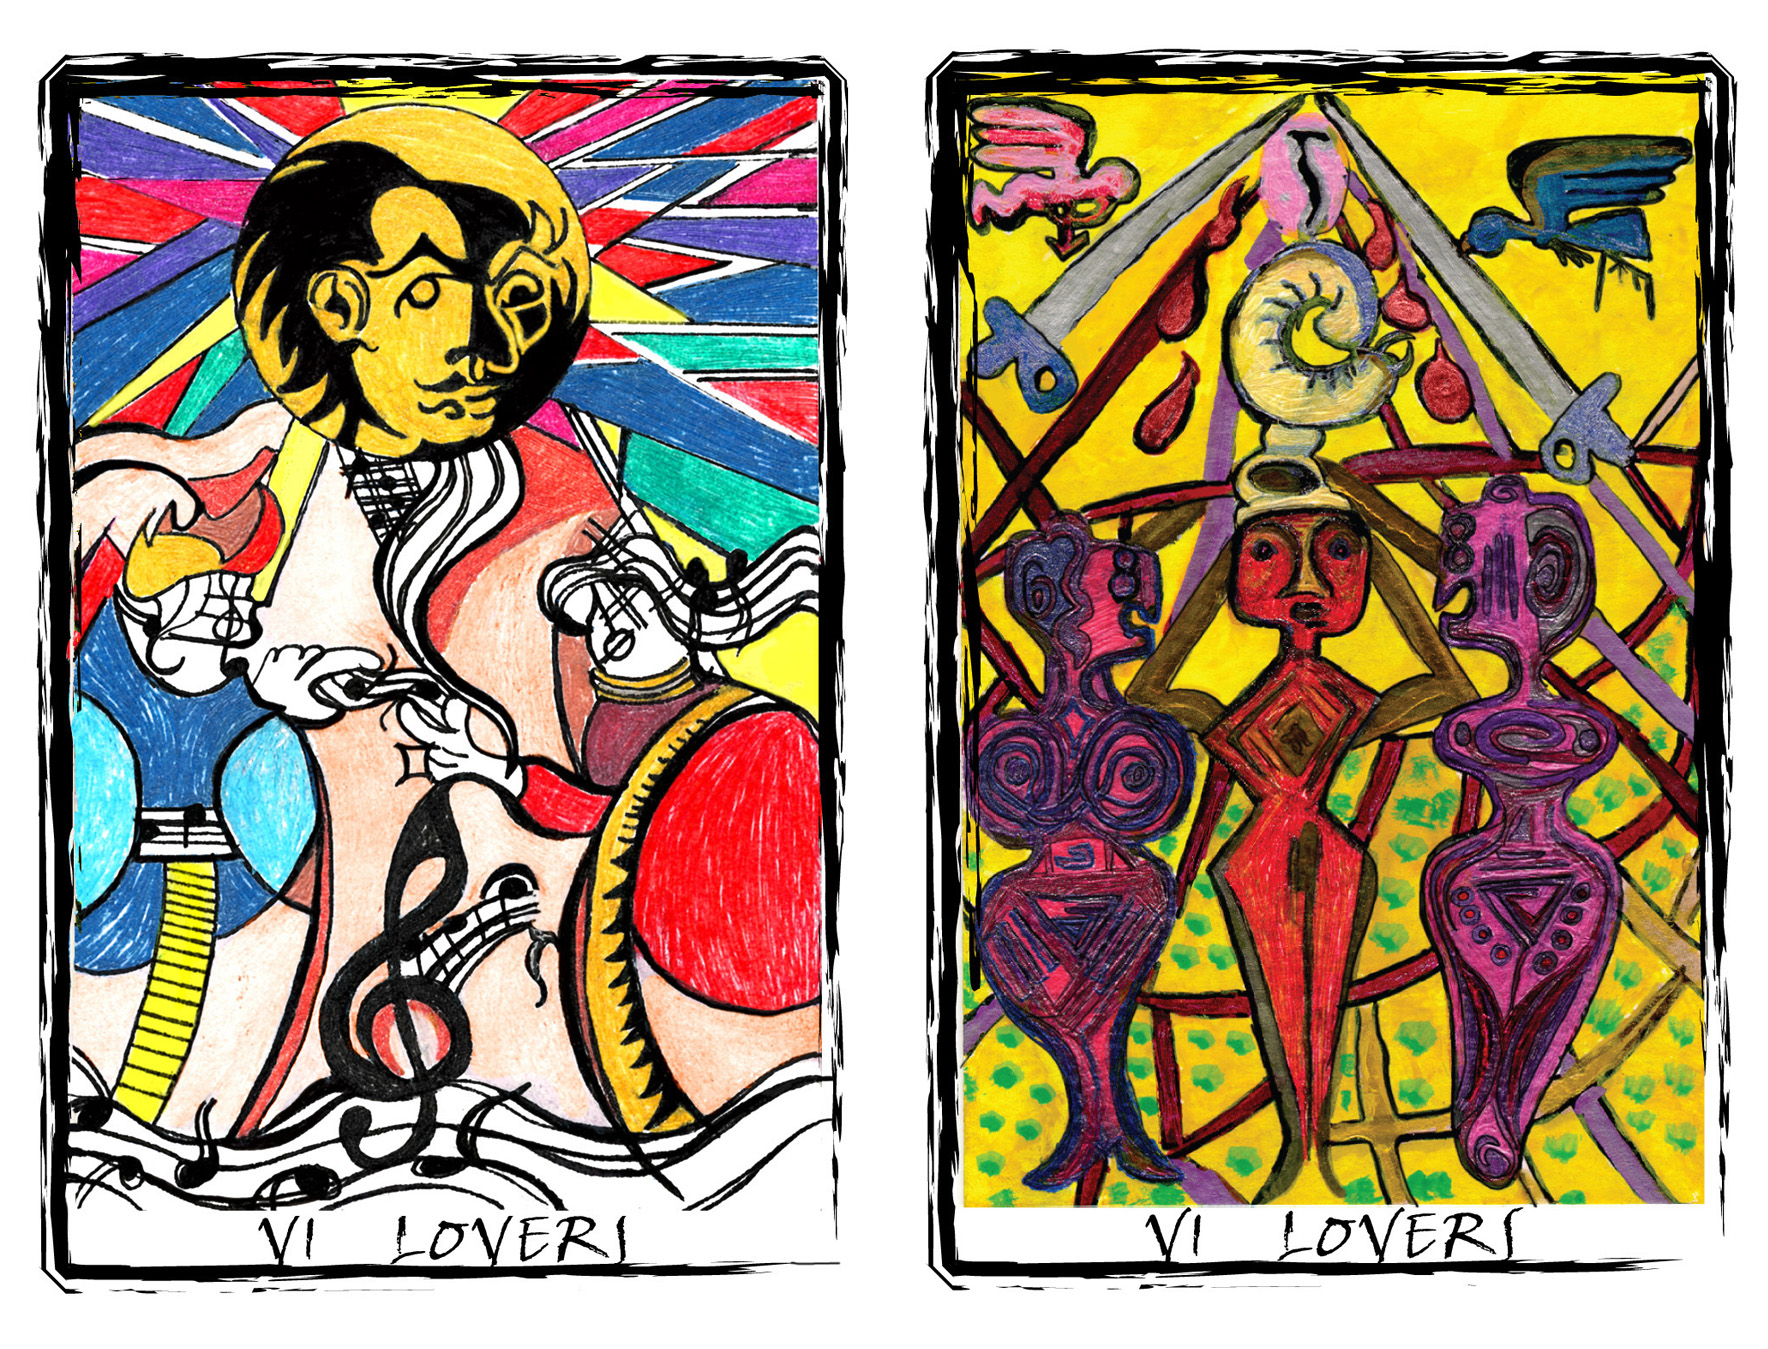 An additional Lover's card is included in the second Edition of the  Radiant Spleen Tarot.